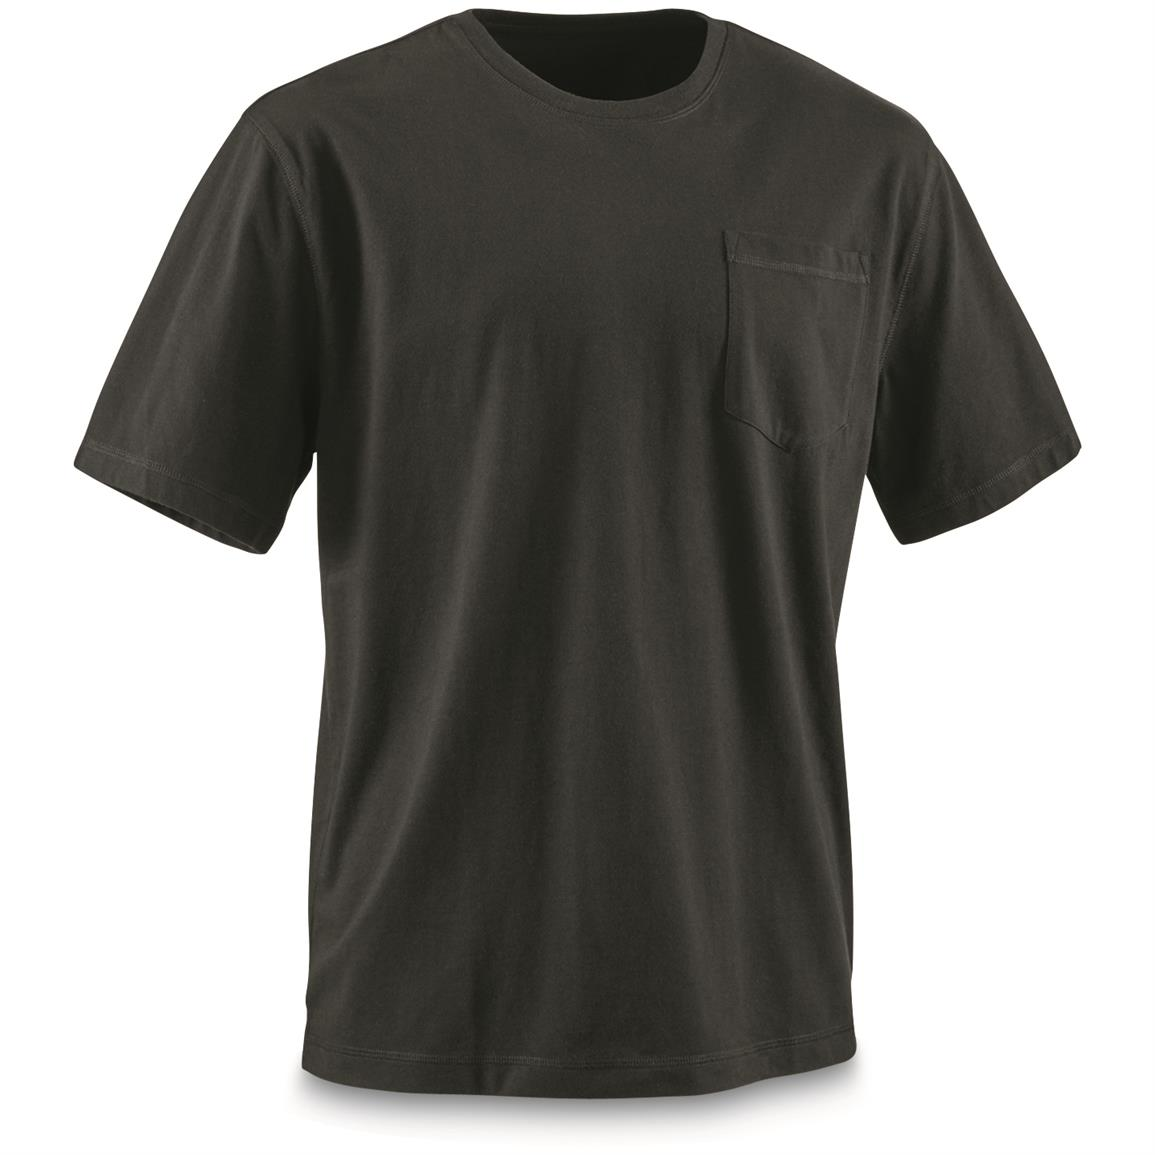 Guide Gear Men's Stain Kicker Short Sleeve Pocket T Shirt With Teflon, Black